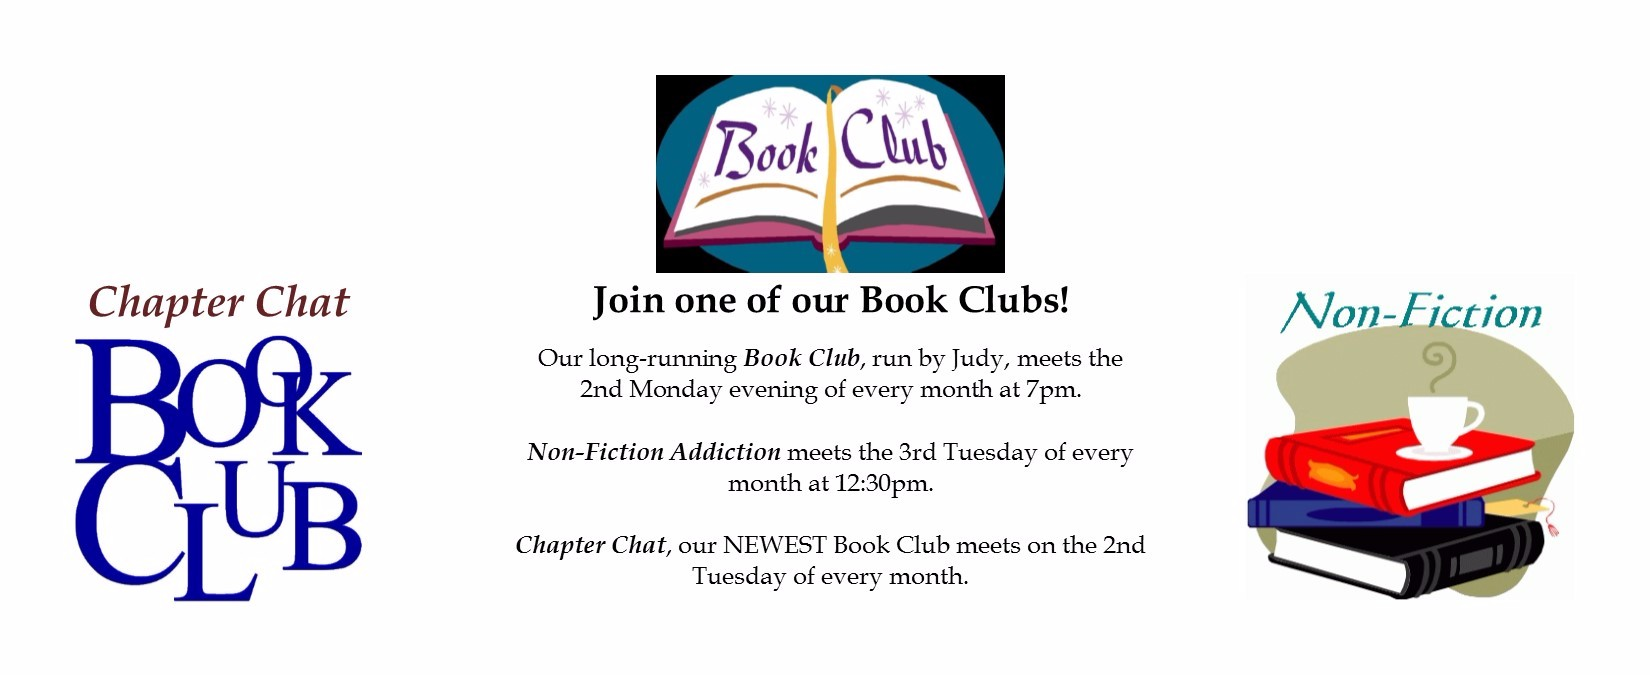 Generic advertisement new book club